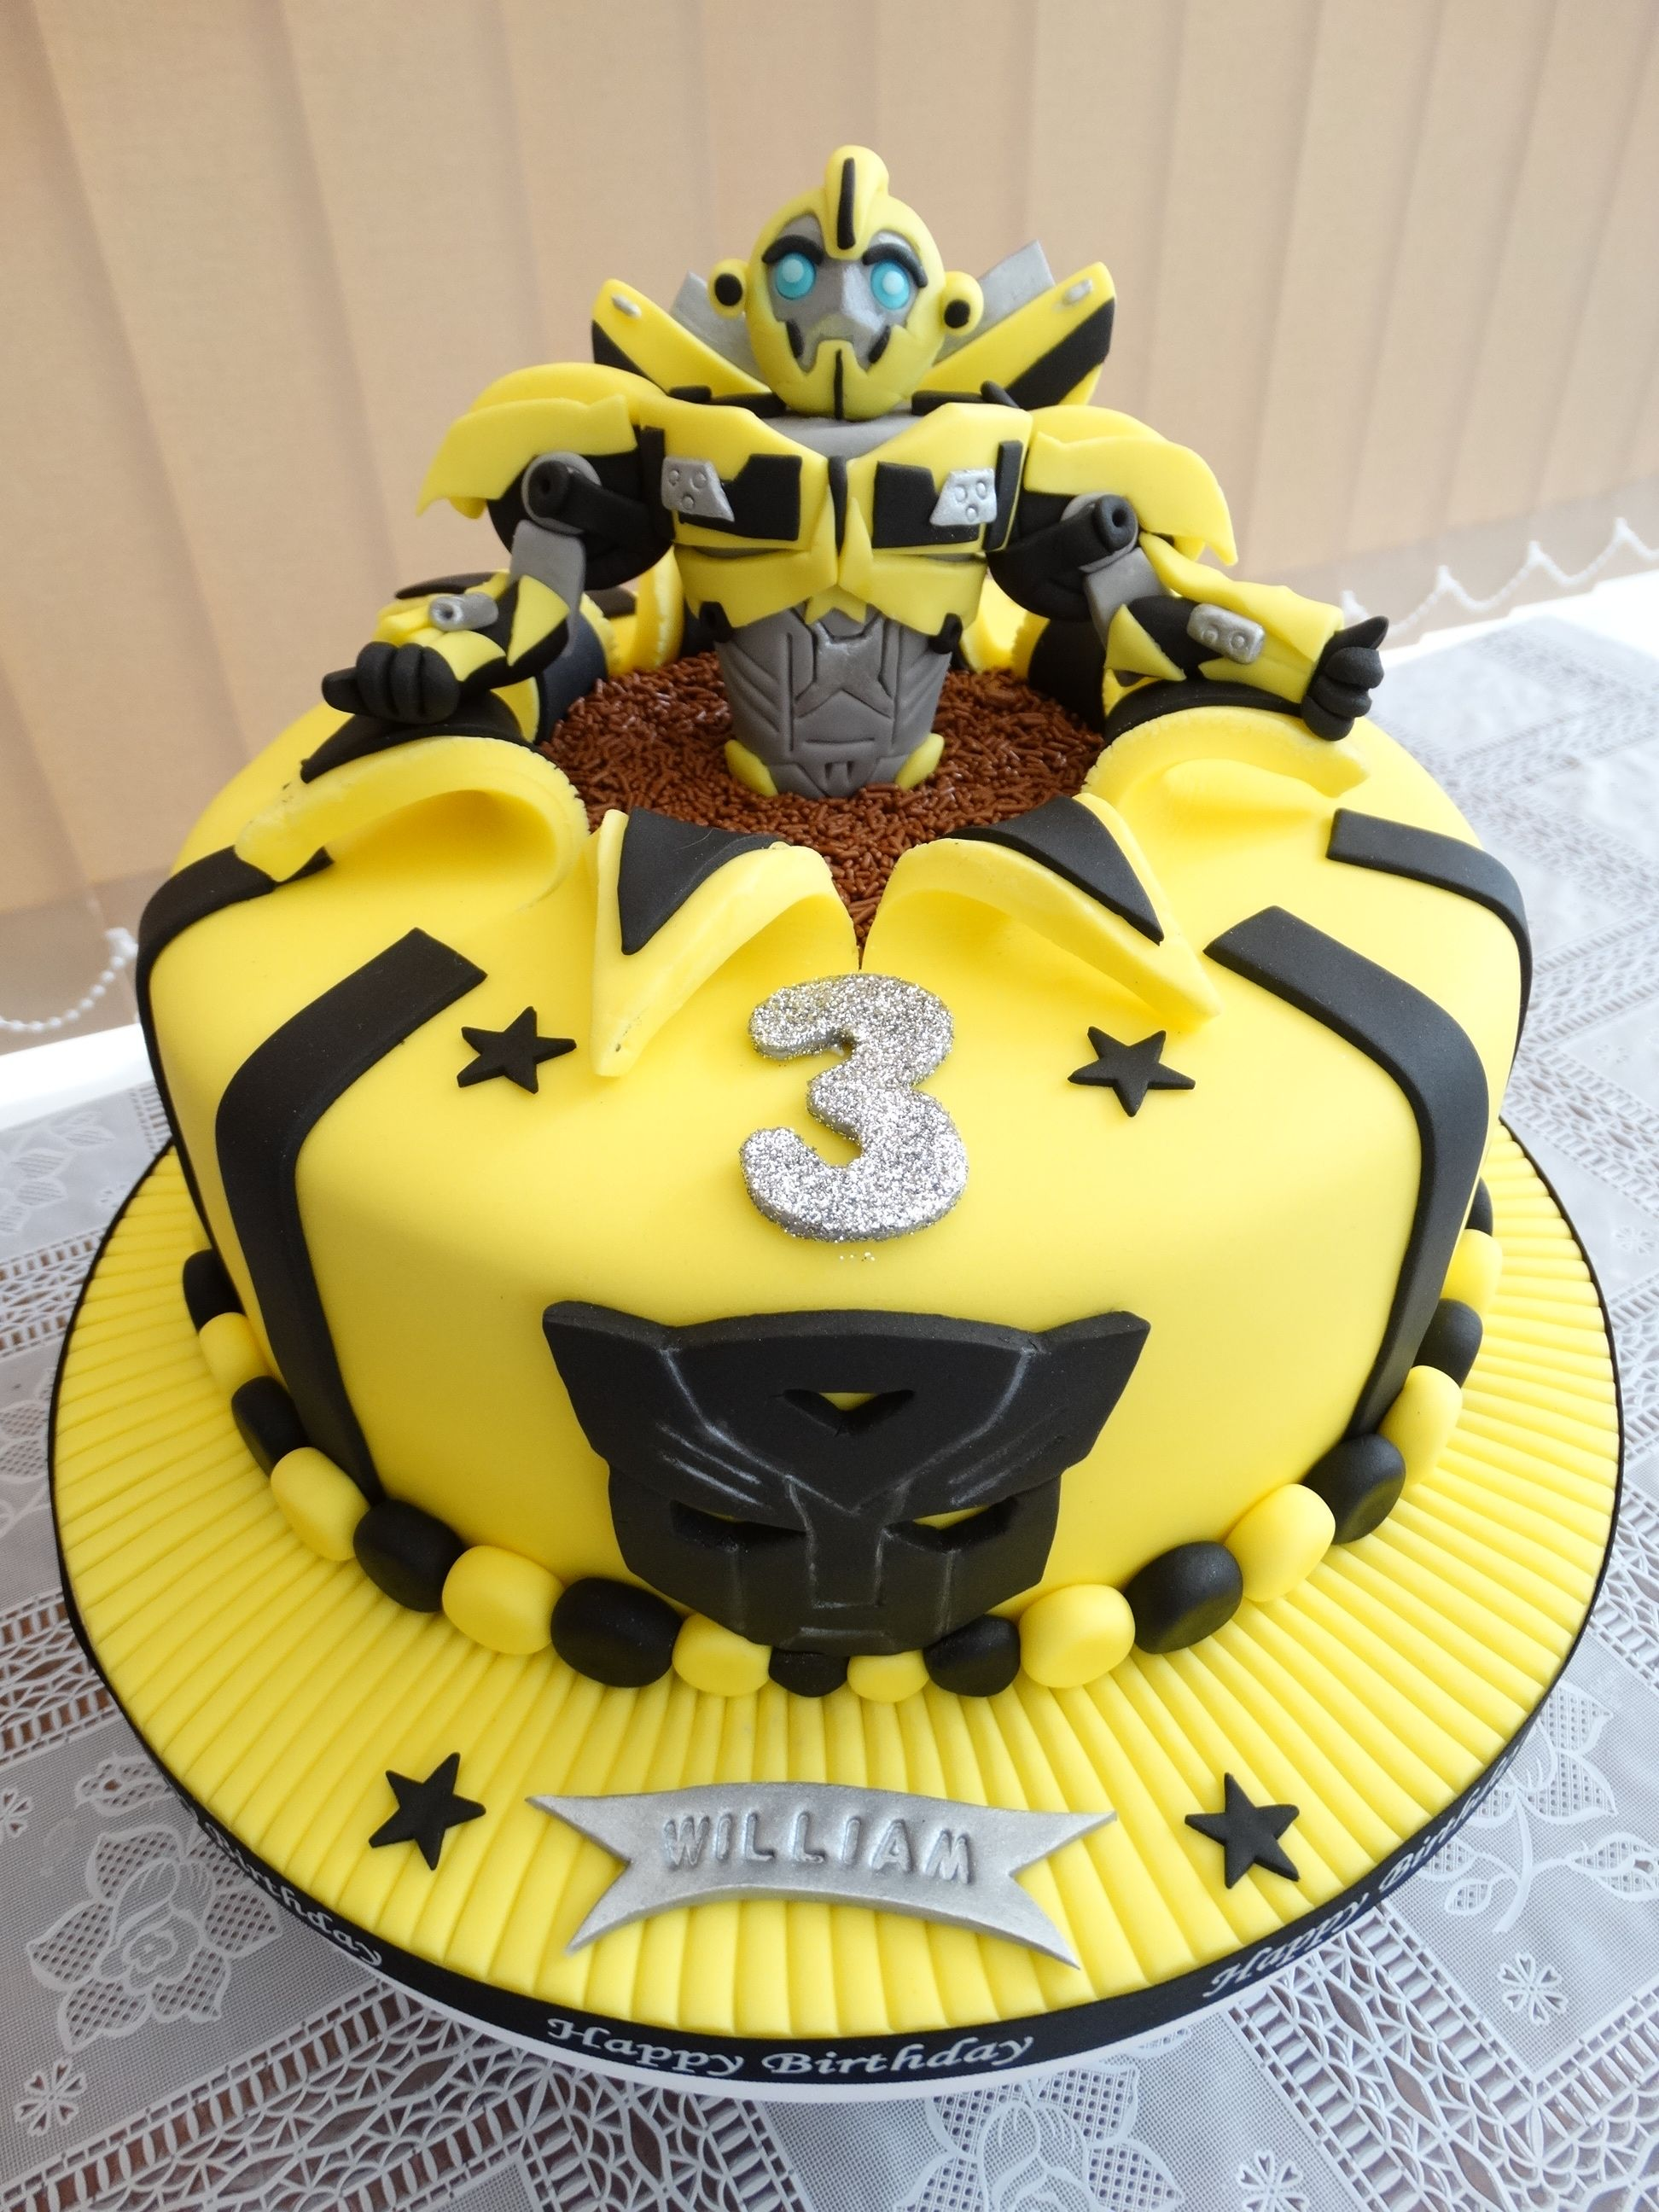 Bumblebee Transformers Cake Xmcx Transformers Birthday Cake